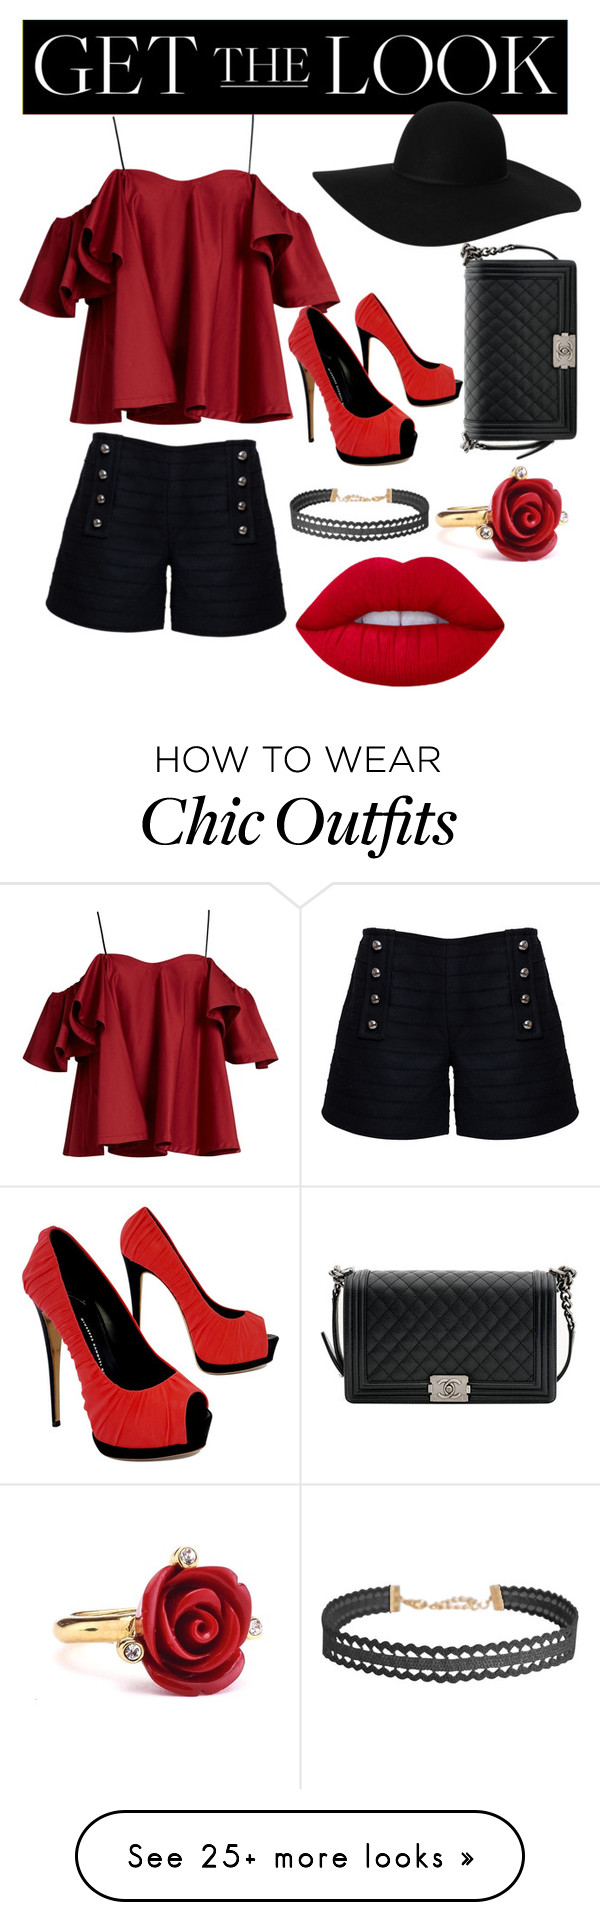 """The celeb look"" by hanksbeauty on Polyvore featuring Anna October, Rumour London, Monki, Giuseppe Zanotti, Chanel, Humble Chic, Oscar de la Renta, Lime Crime, GetTheLook and hats"